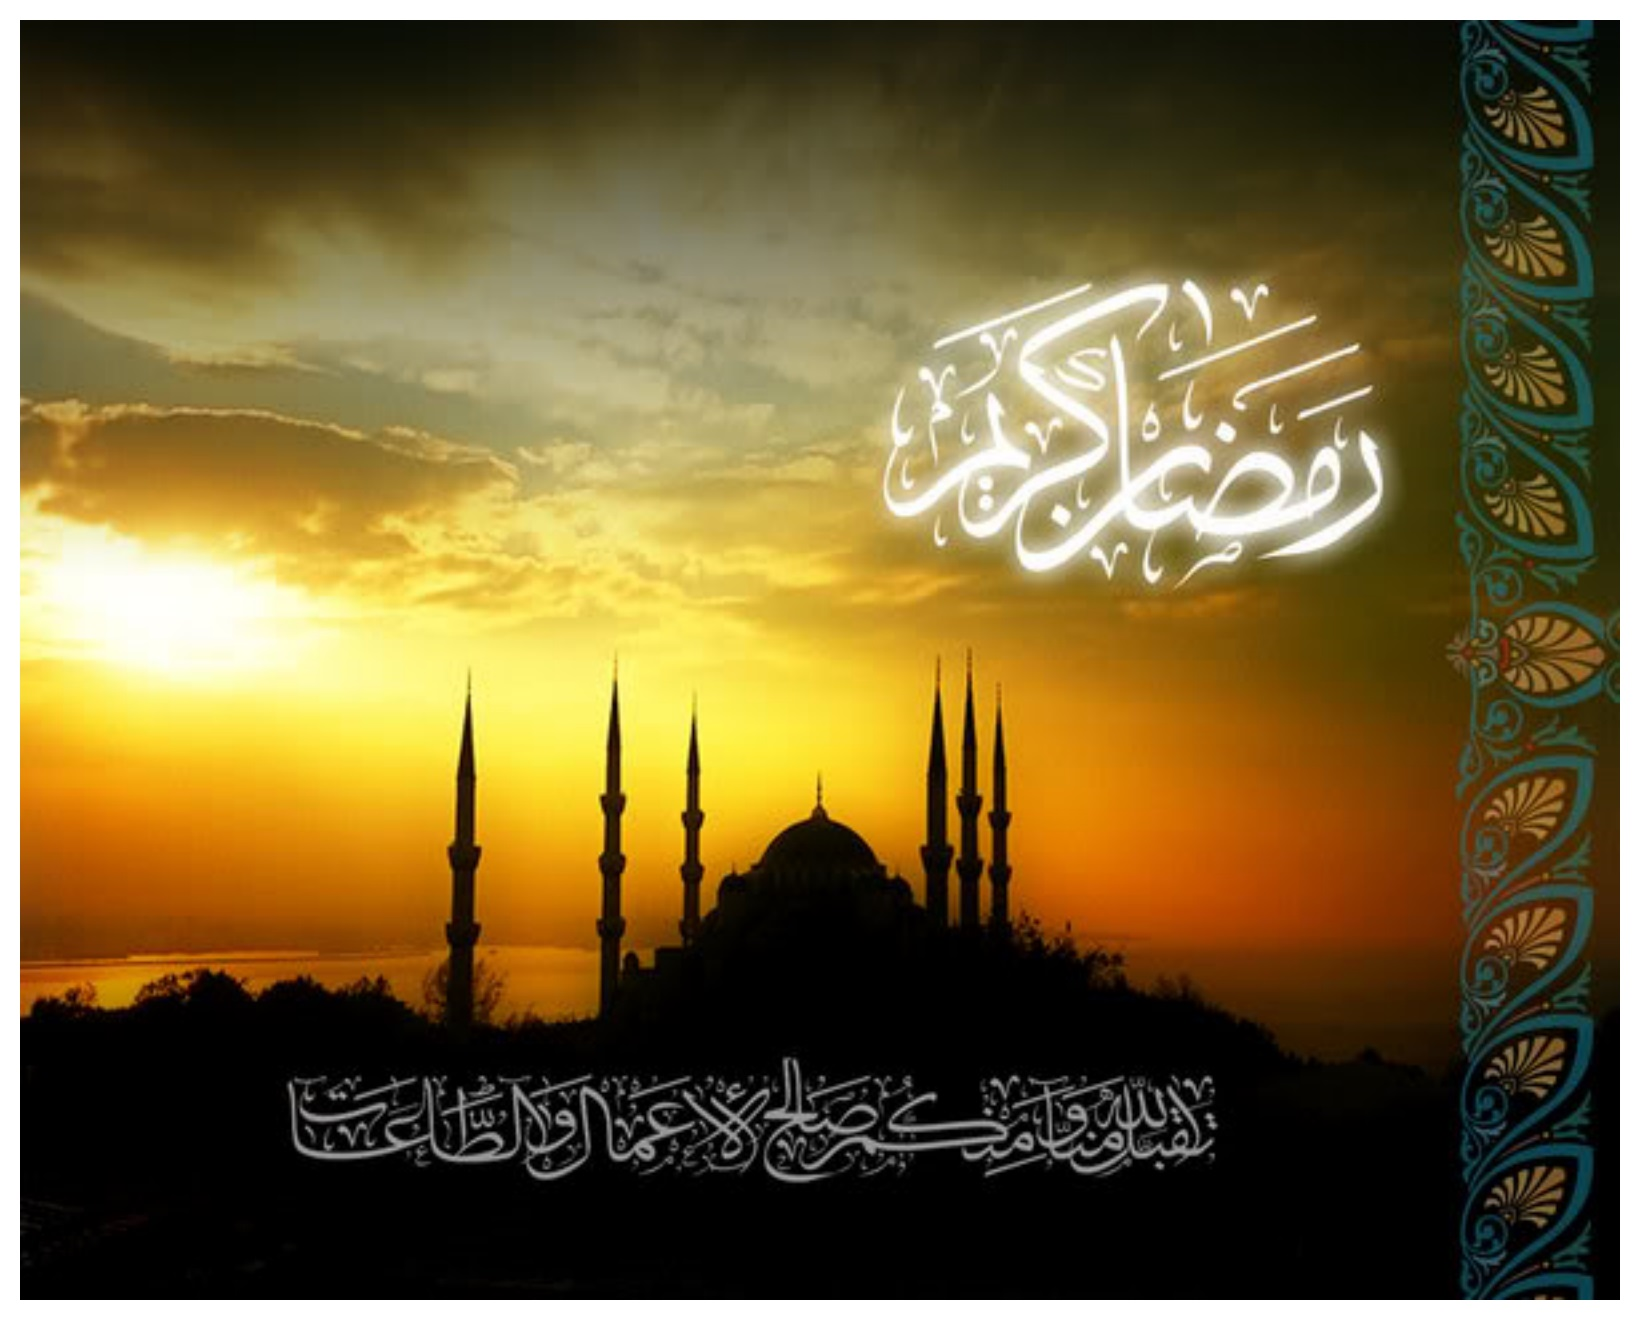 Islamic Quotes And Wallpapers Latest Most Islamic High Definition Wallpapers For Desktop